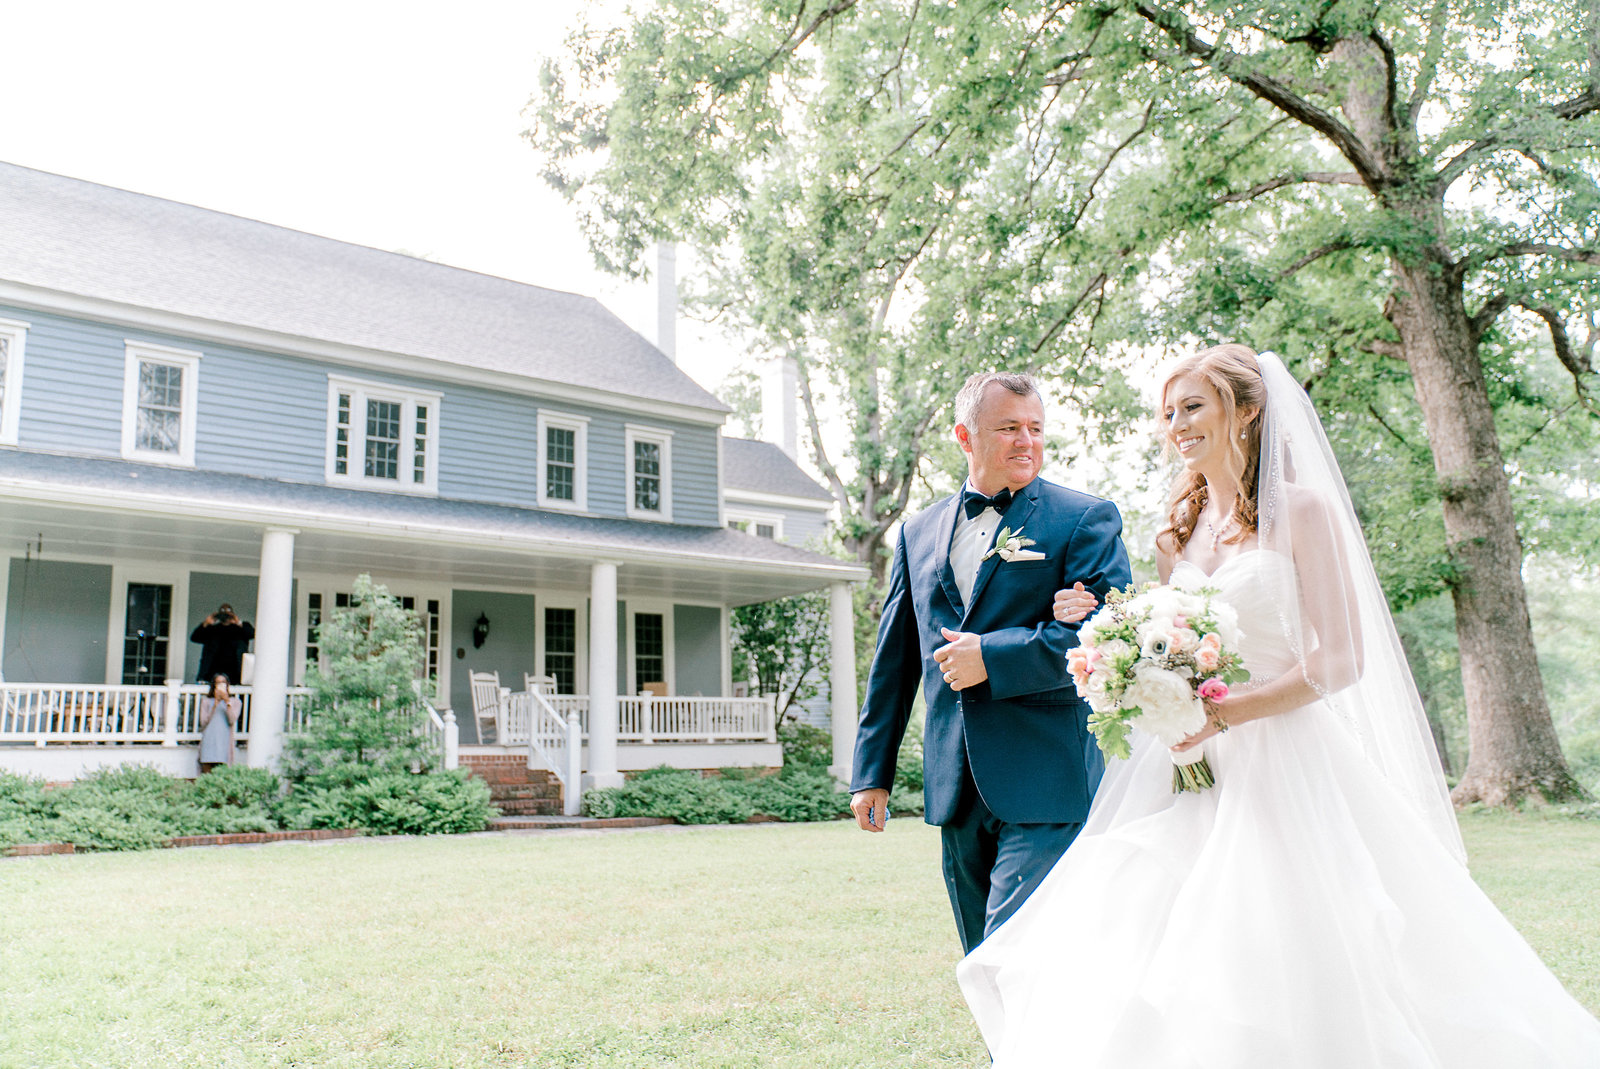 charlotte-wedding-photographer-bright-and-airy-charleston-savannah-asheville-nc-sc-north-carolina-south-carolina-alyssa-frost-photography-26